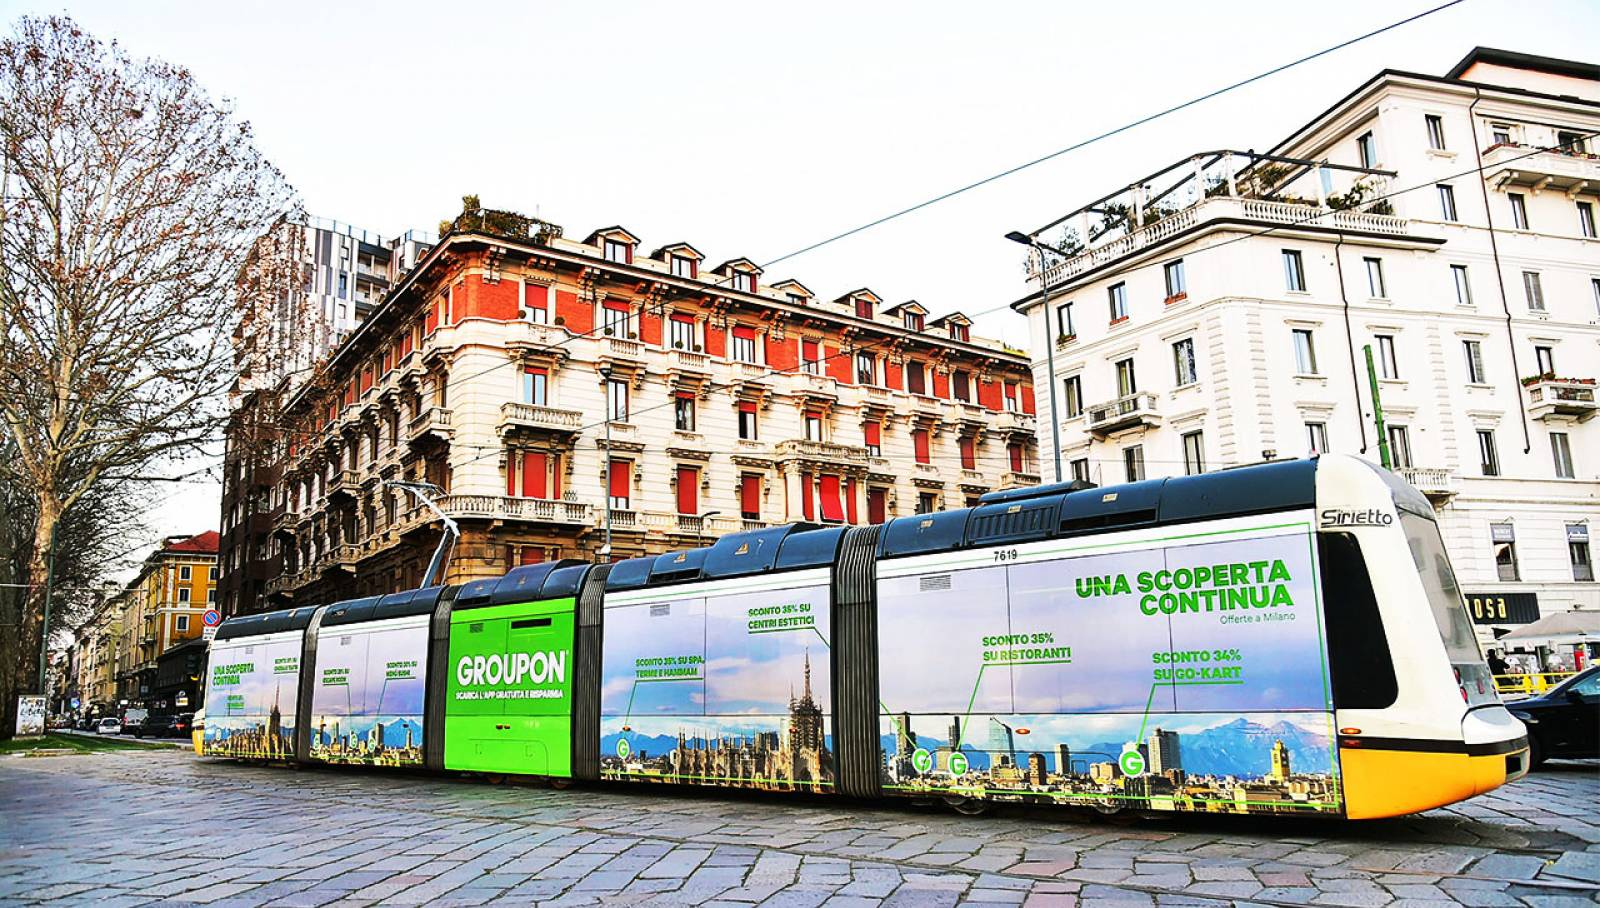 IGPDecaux Out of Home advertising in Milan Full-Wrap for Groupon